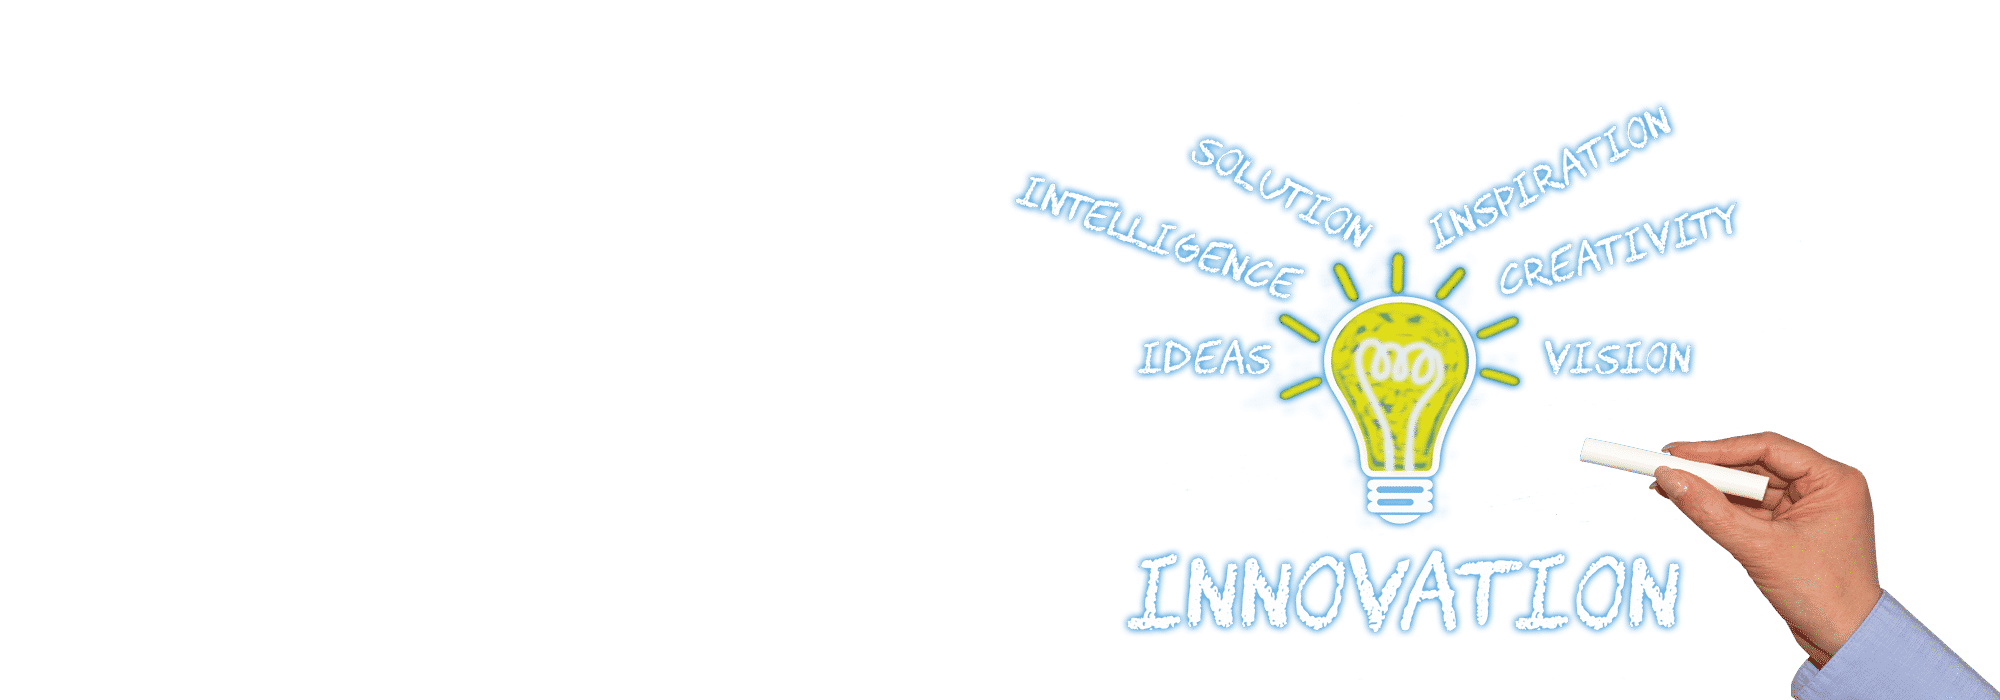 Technology-innovators-banner